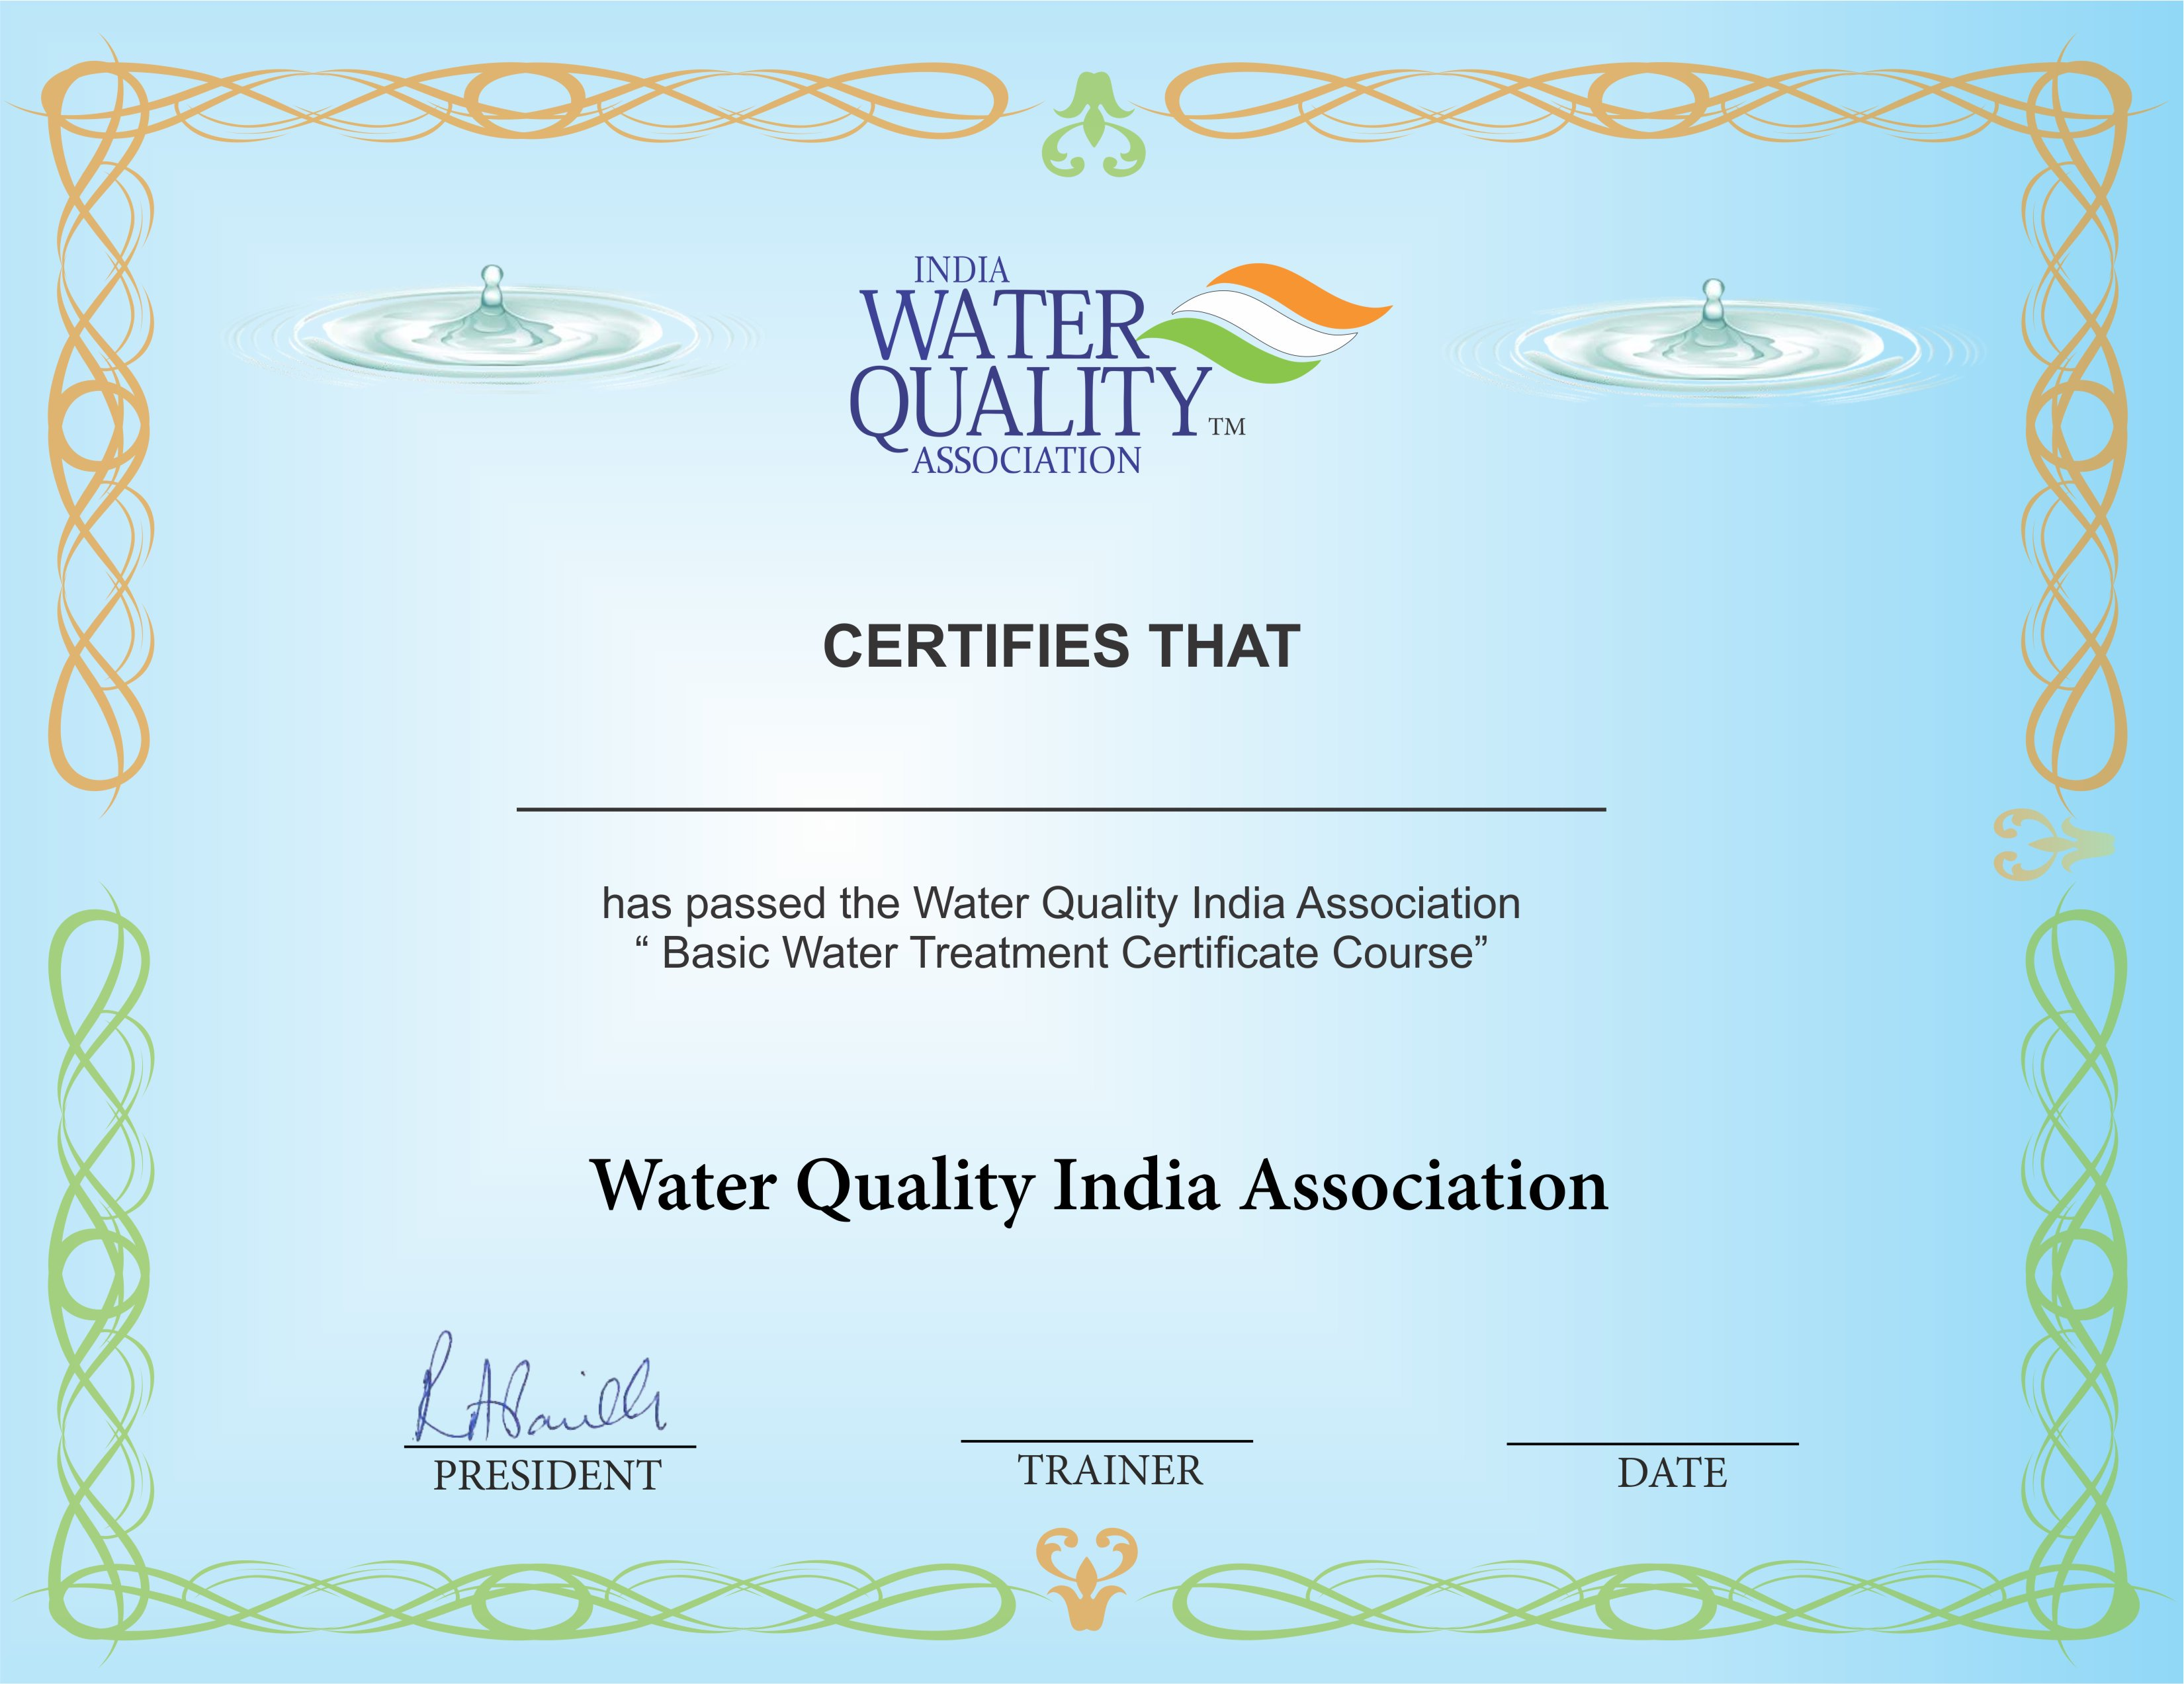 Basic water treatment course wqia this training has been conducted for different companies viz filtrex technologies pvt ltd bajaj electricals ltd ao smith india water products pvt 1betcityfo Choice Image